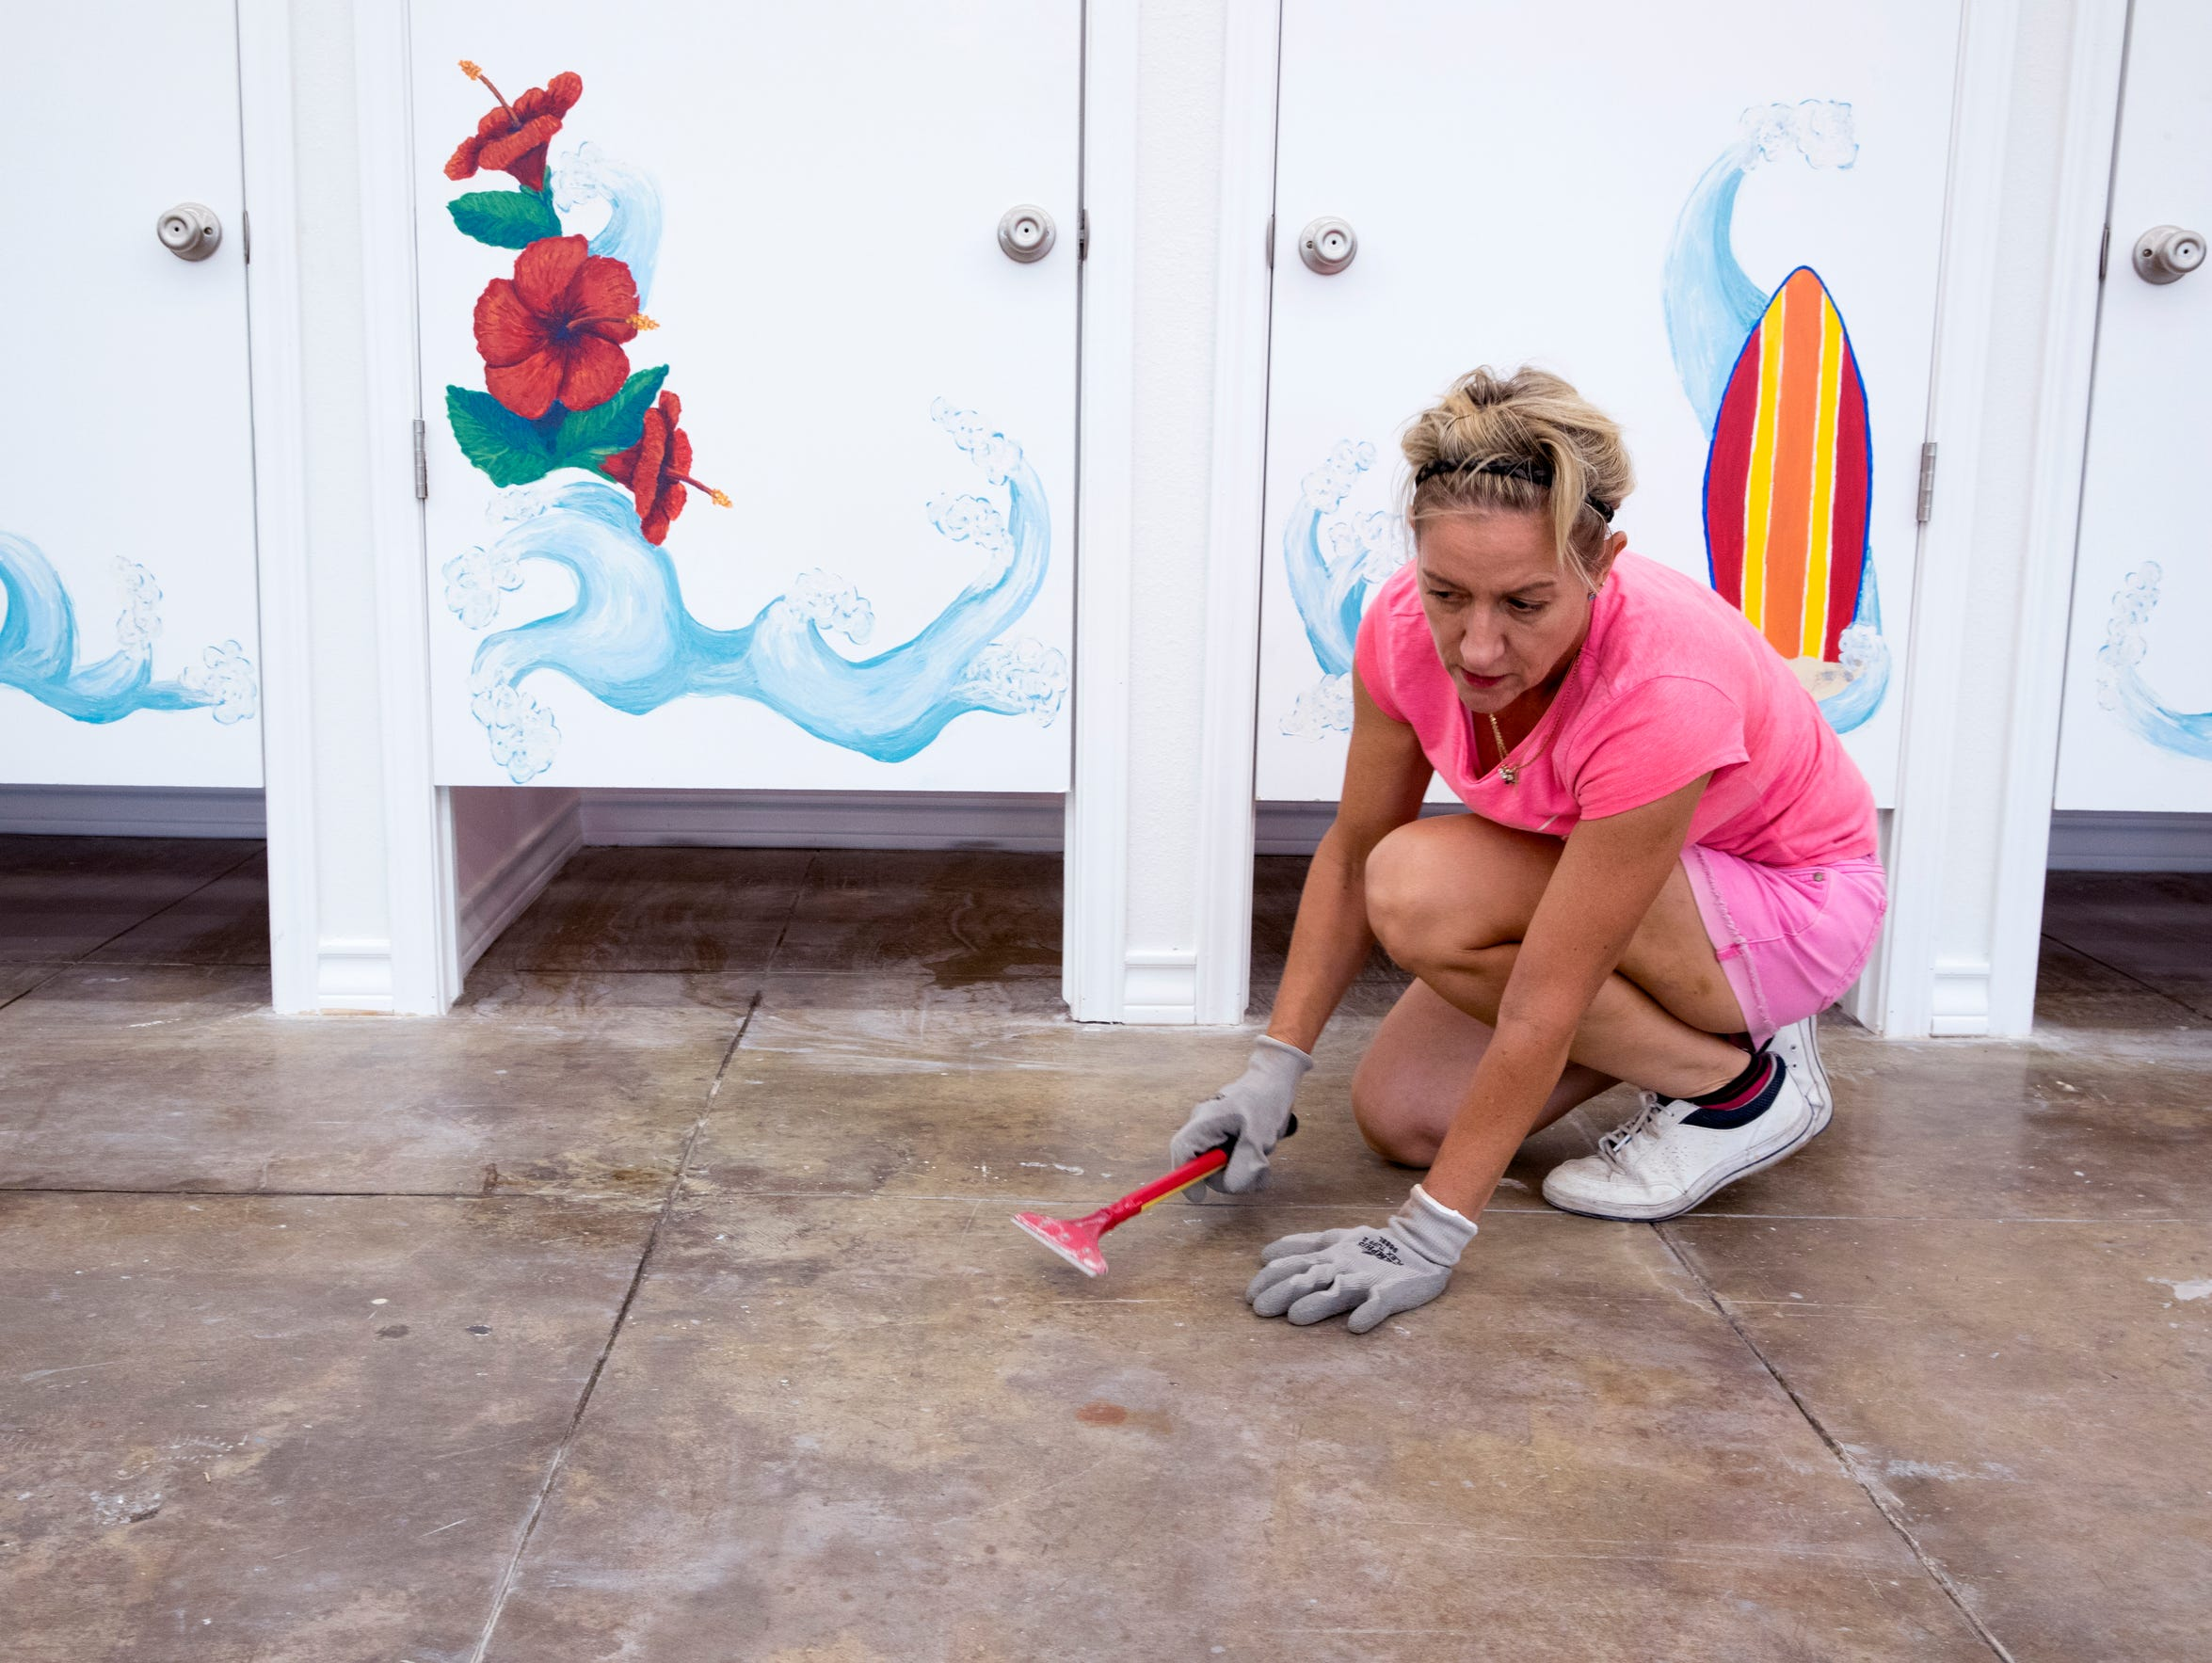 Pam Luebke works to clean the floors at Island Sports,